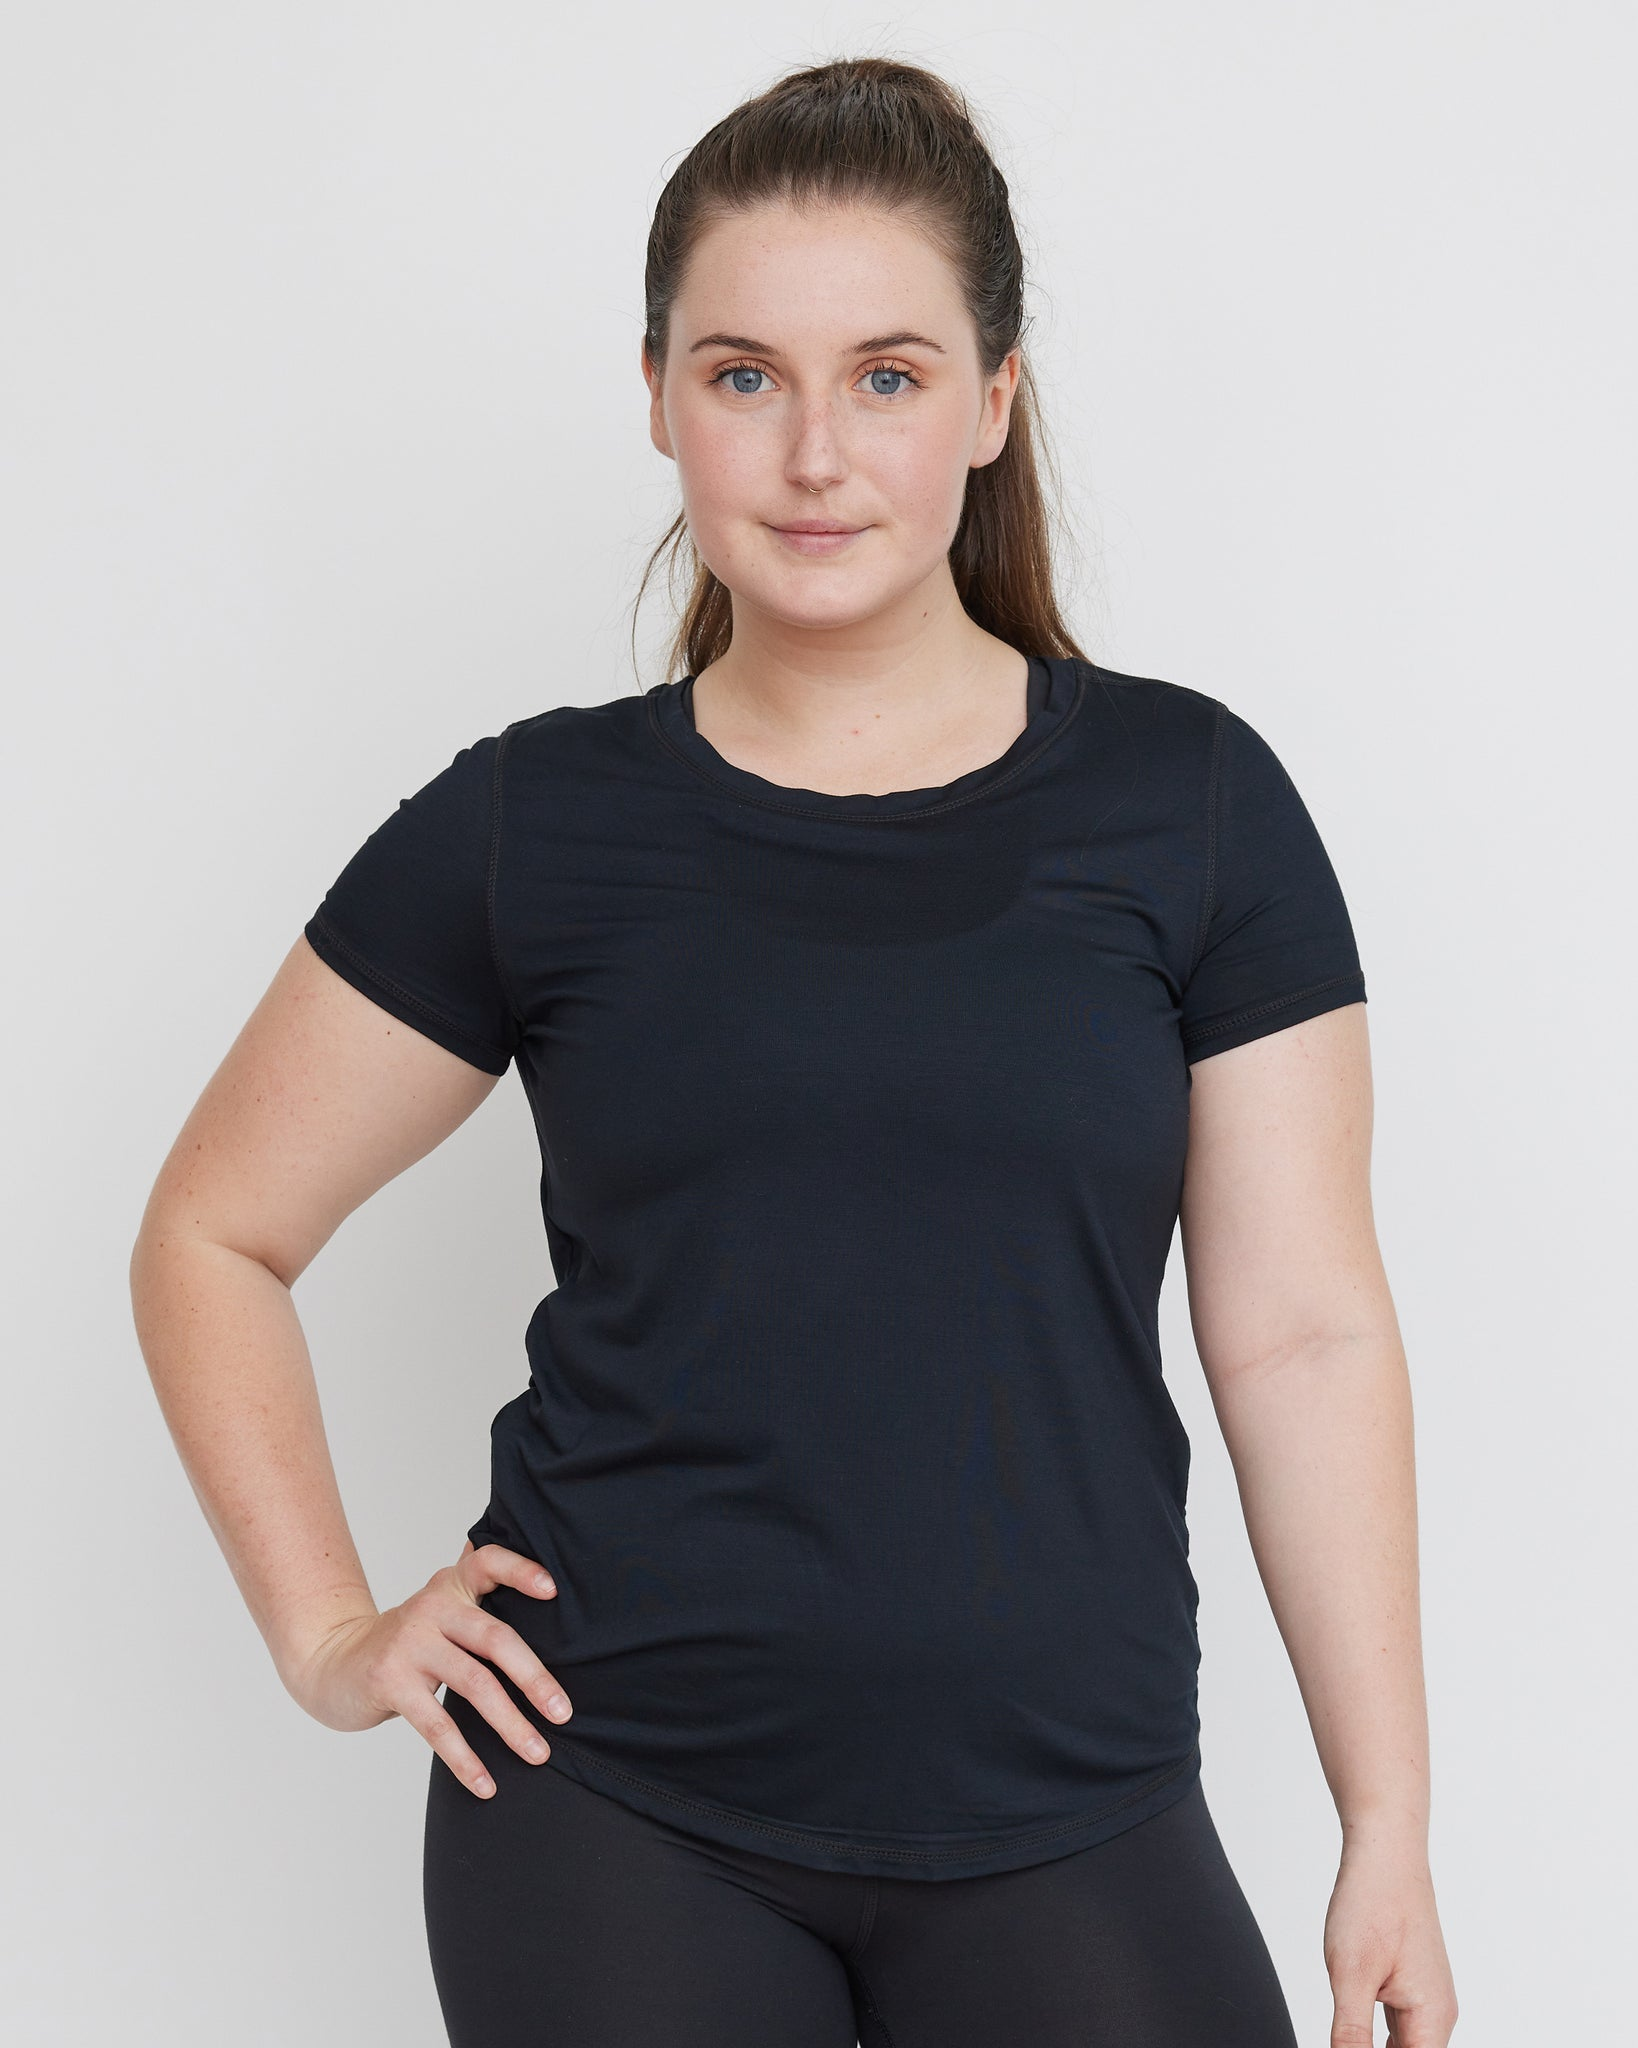 Freedom T-Shirt | Black | Women